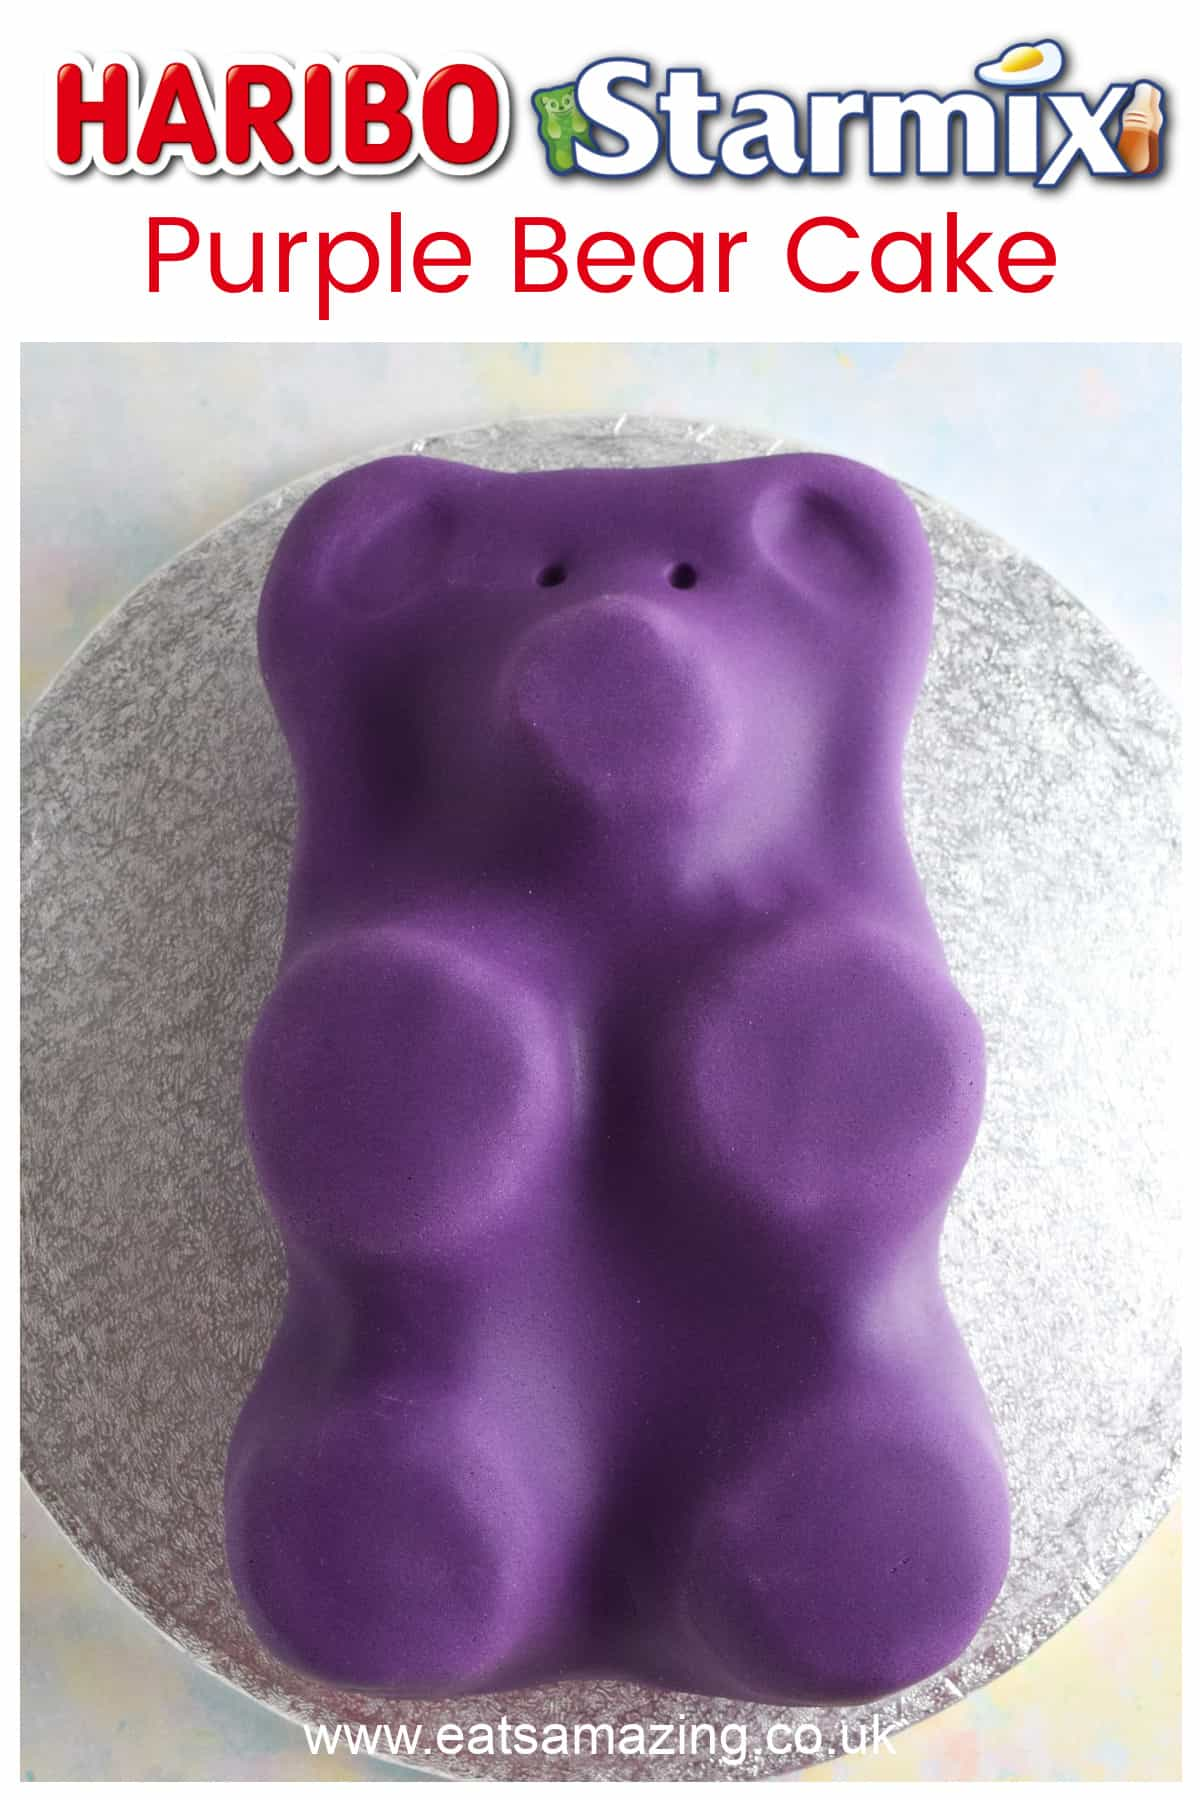 This easy HARIBO Starmix Gummy Bear cake recipe makes a great kids birthday cake idea - with video tutorial and printable recipe